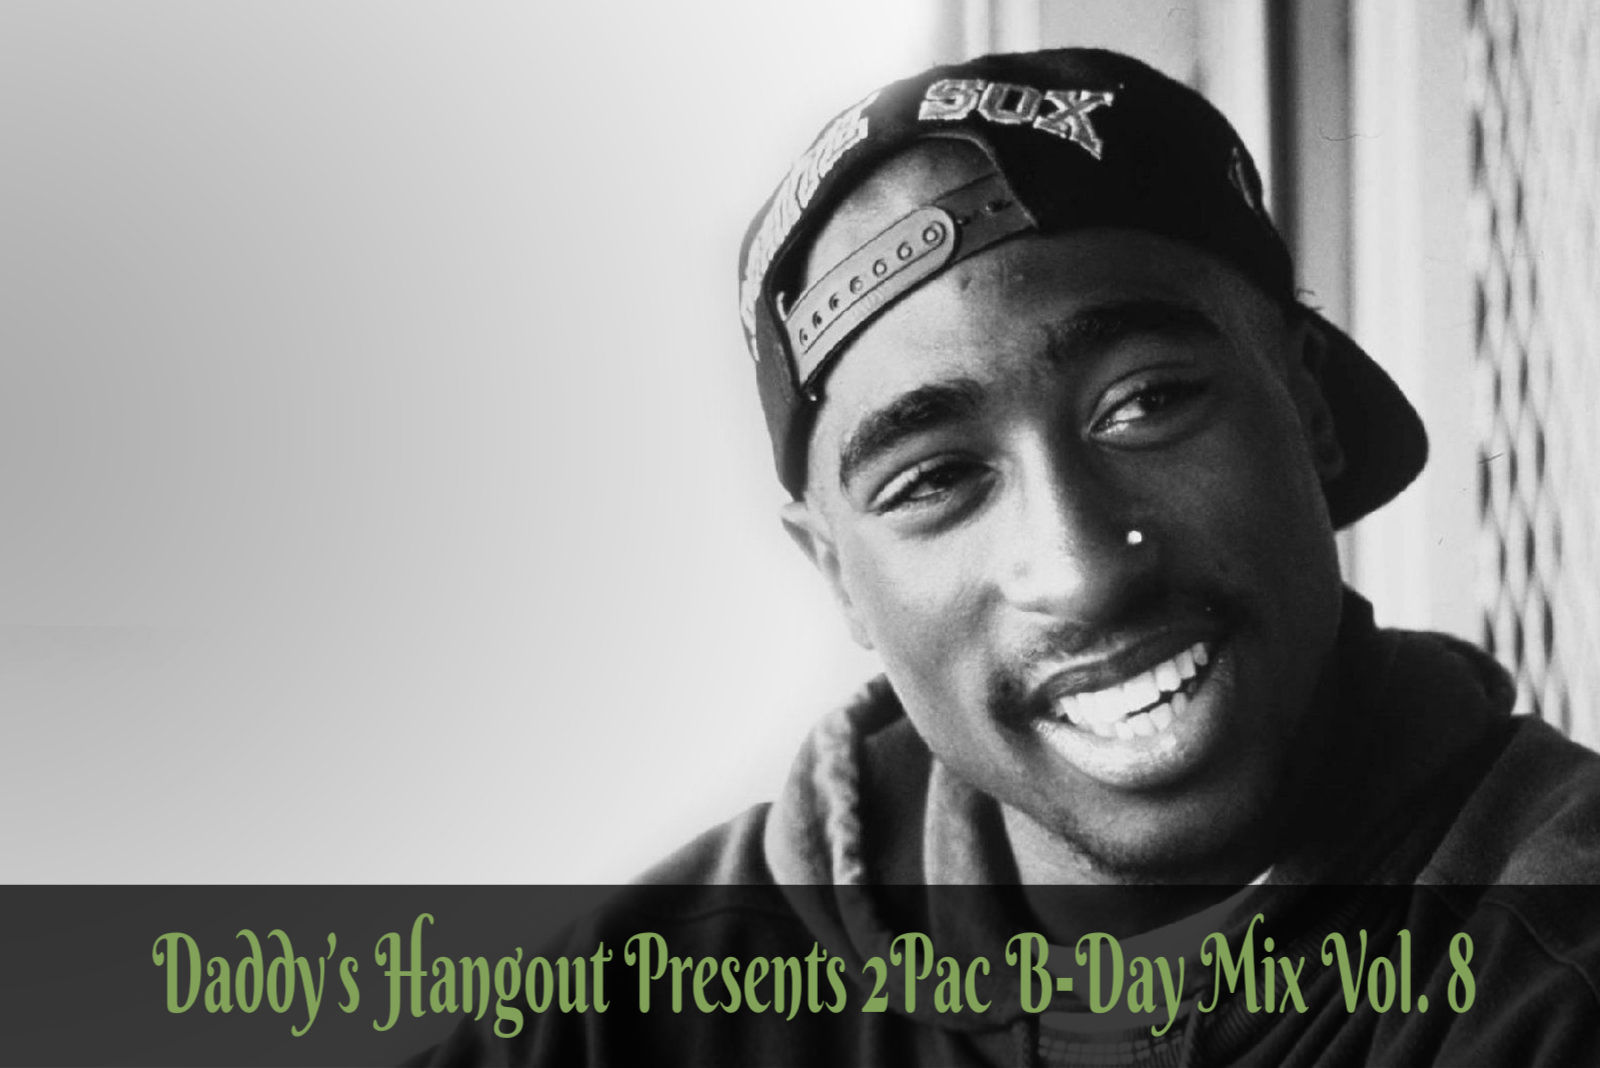 Daddy's Hangout Presents 2Pac B-Day Mix Vol. 8